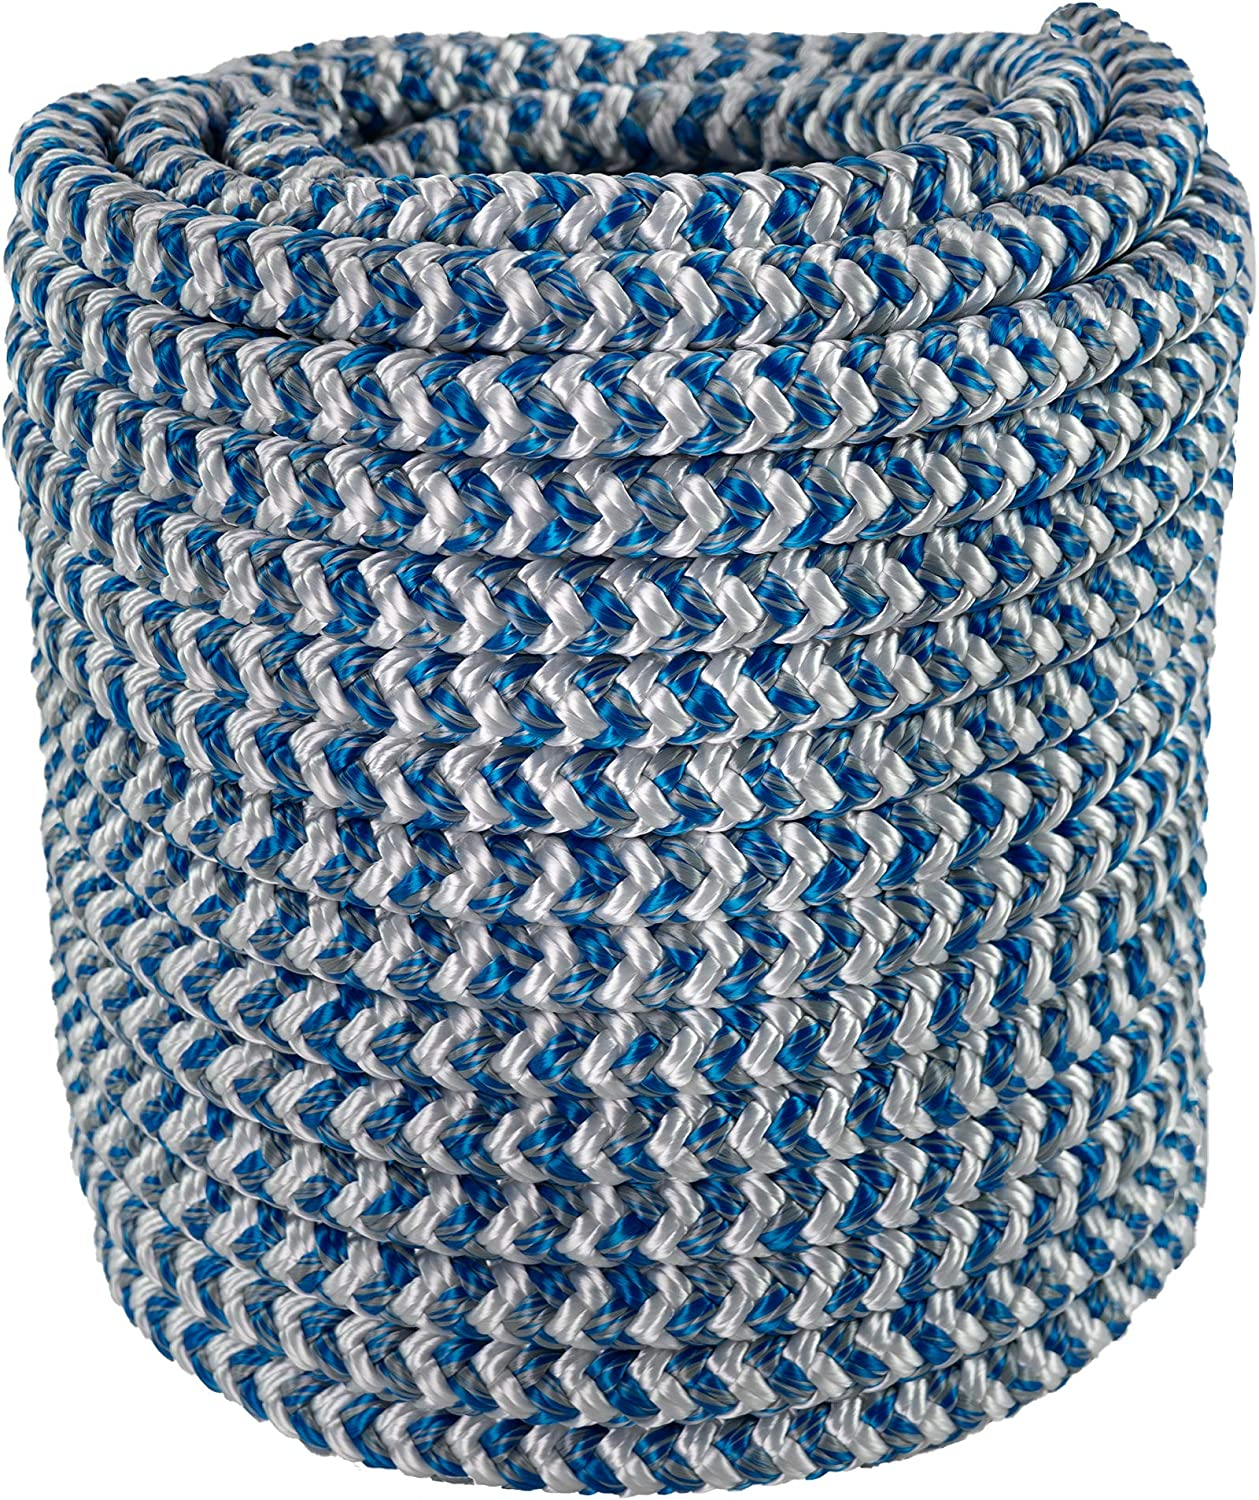 12 Strand Double Max 79% Limited price sale OFF Carrier Braided Bull Polyester Rope Arborist